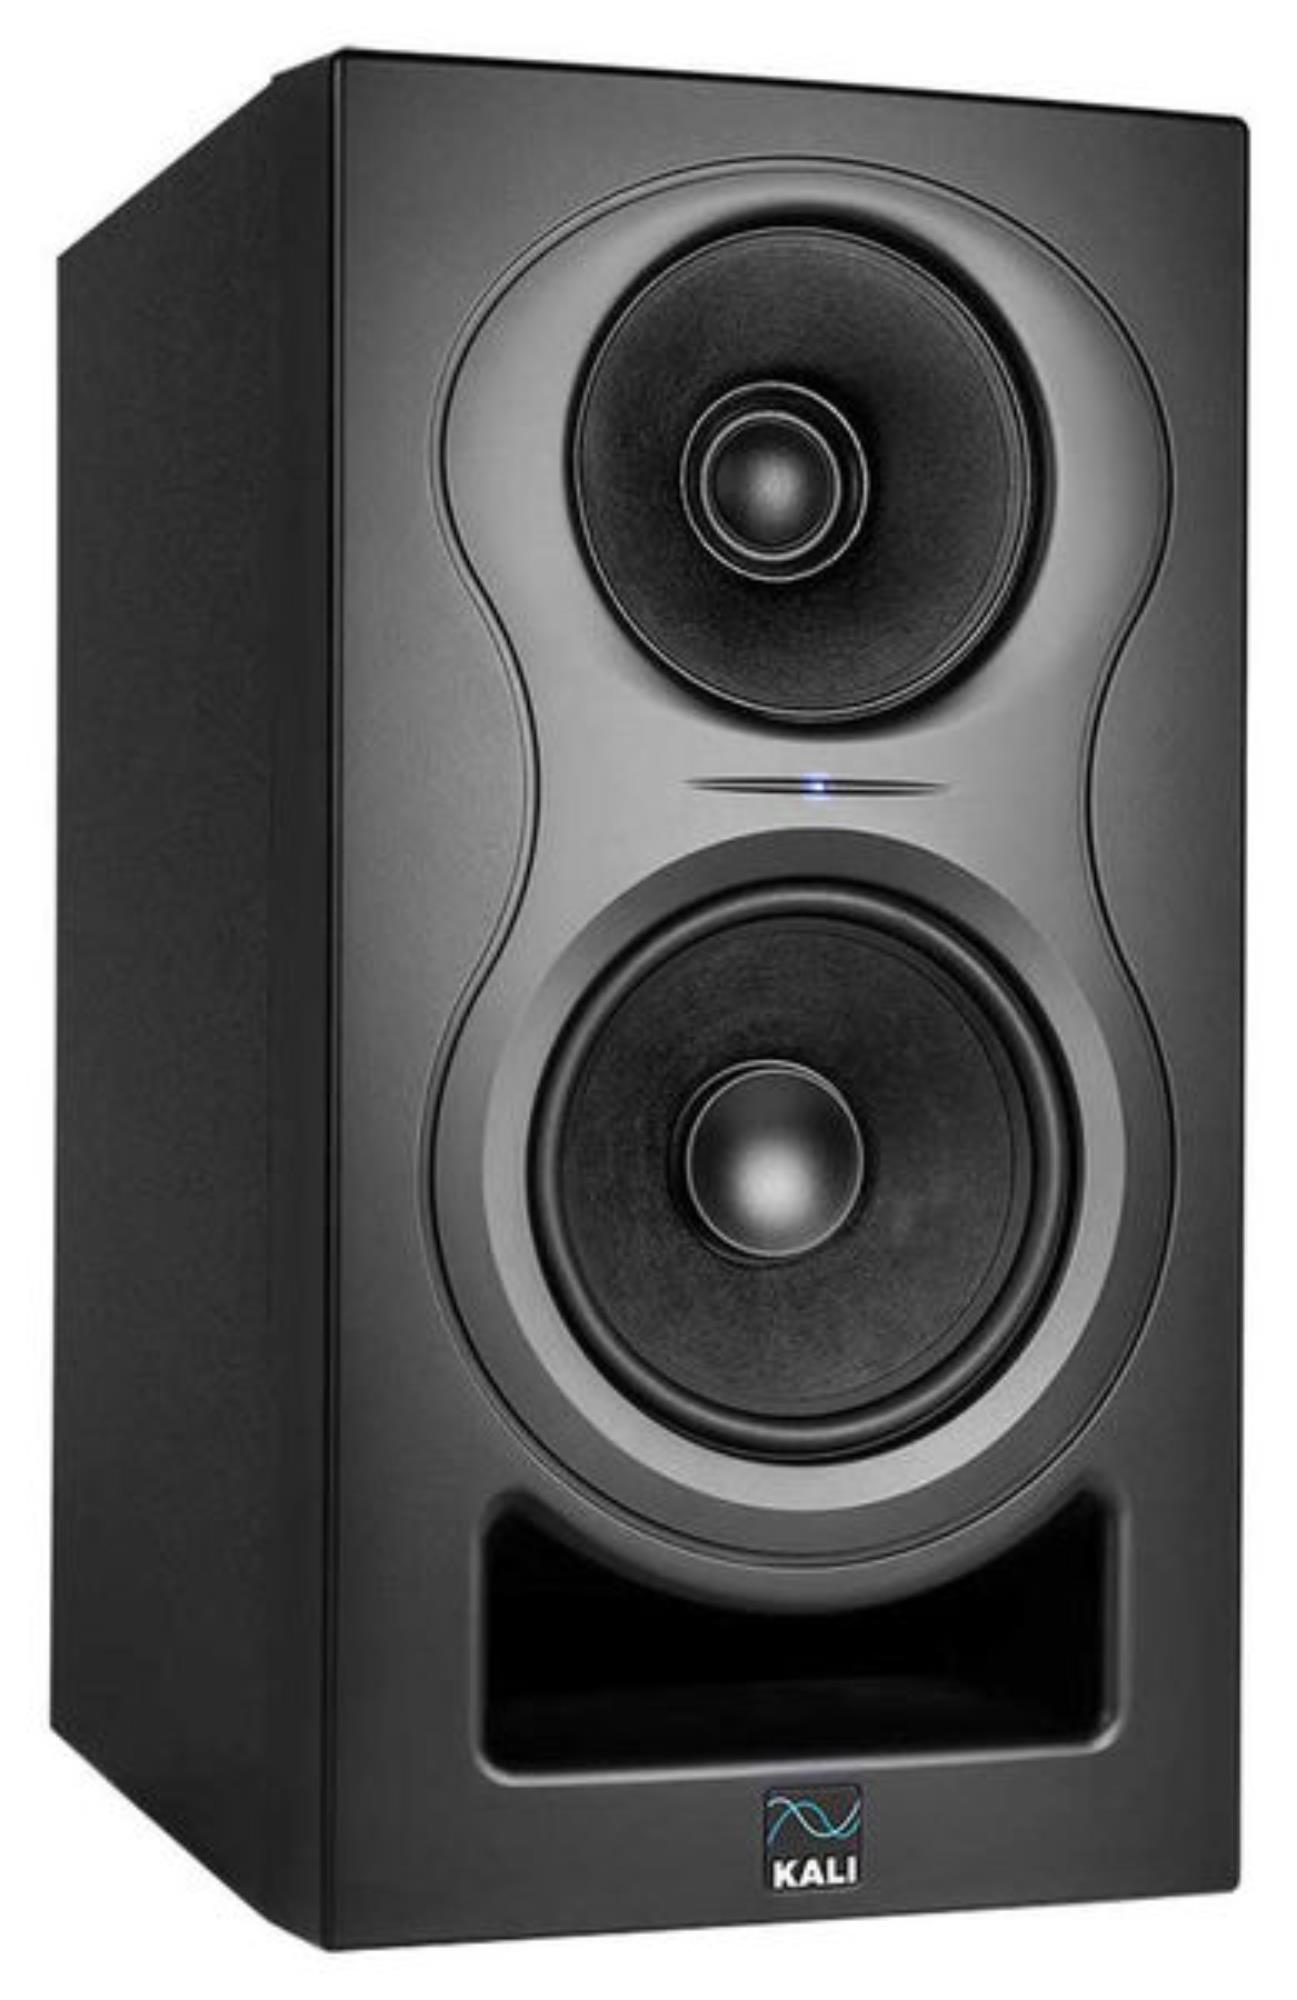 Kali-Audio-IN-5-Monitor-triamplificato-da-studio-5-sku-1743245000003